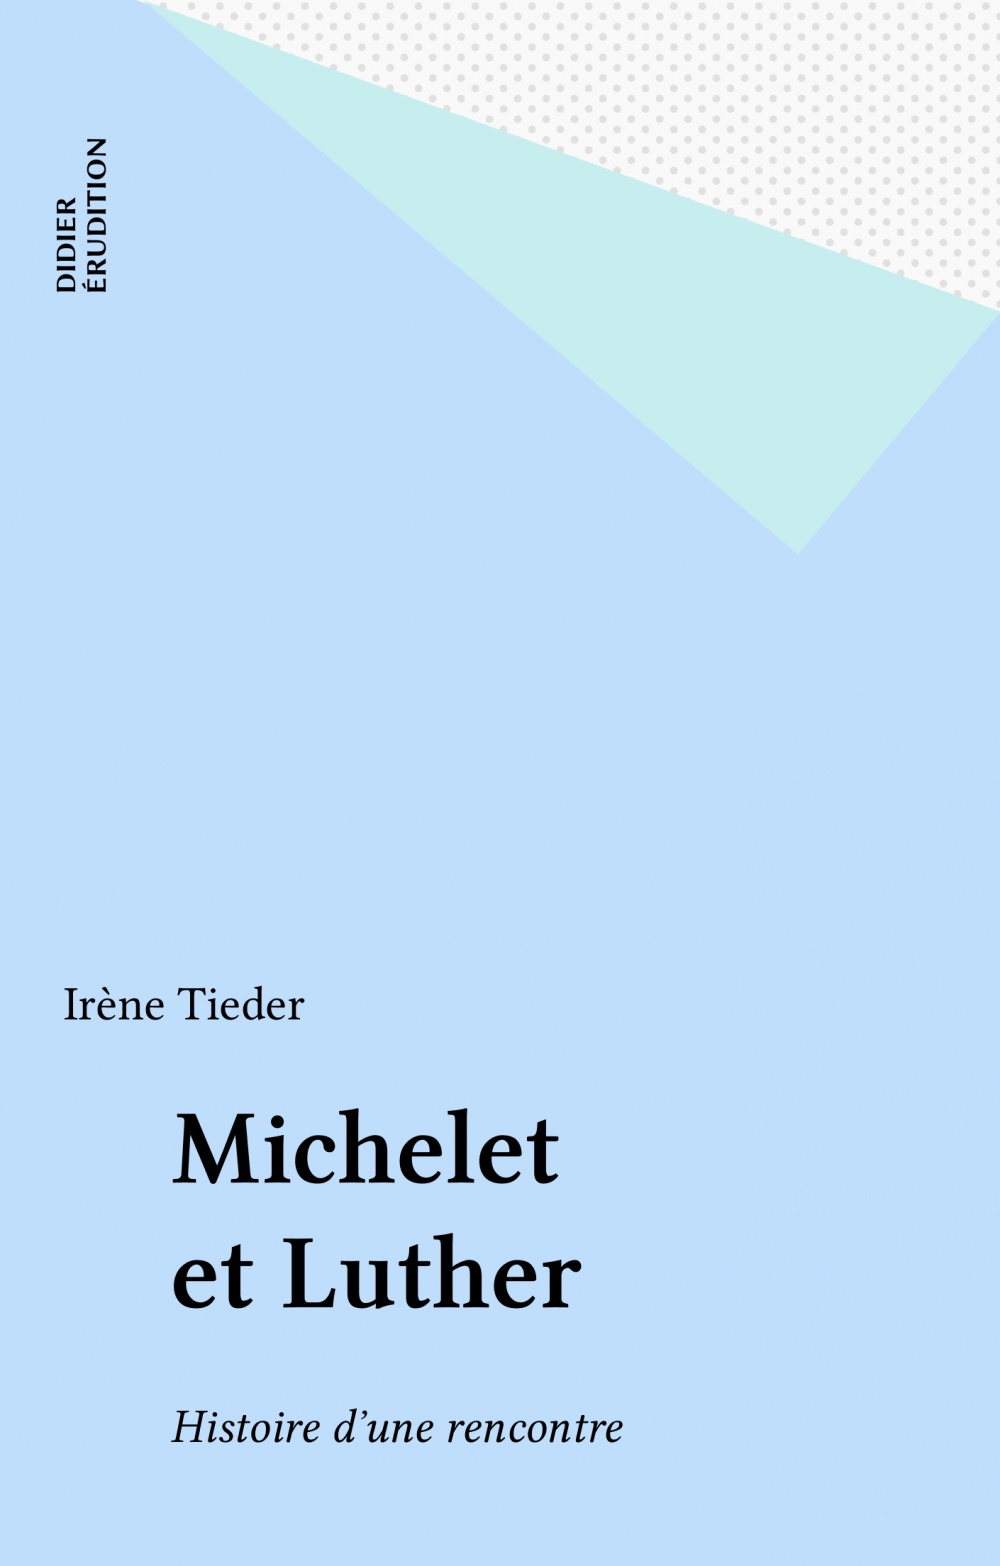 Michelet et Luther